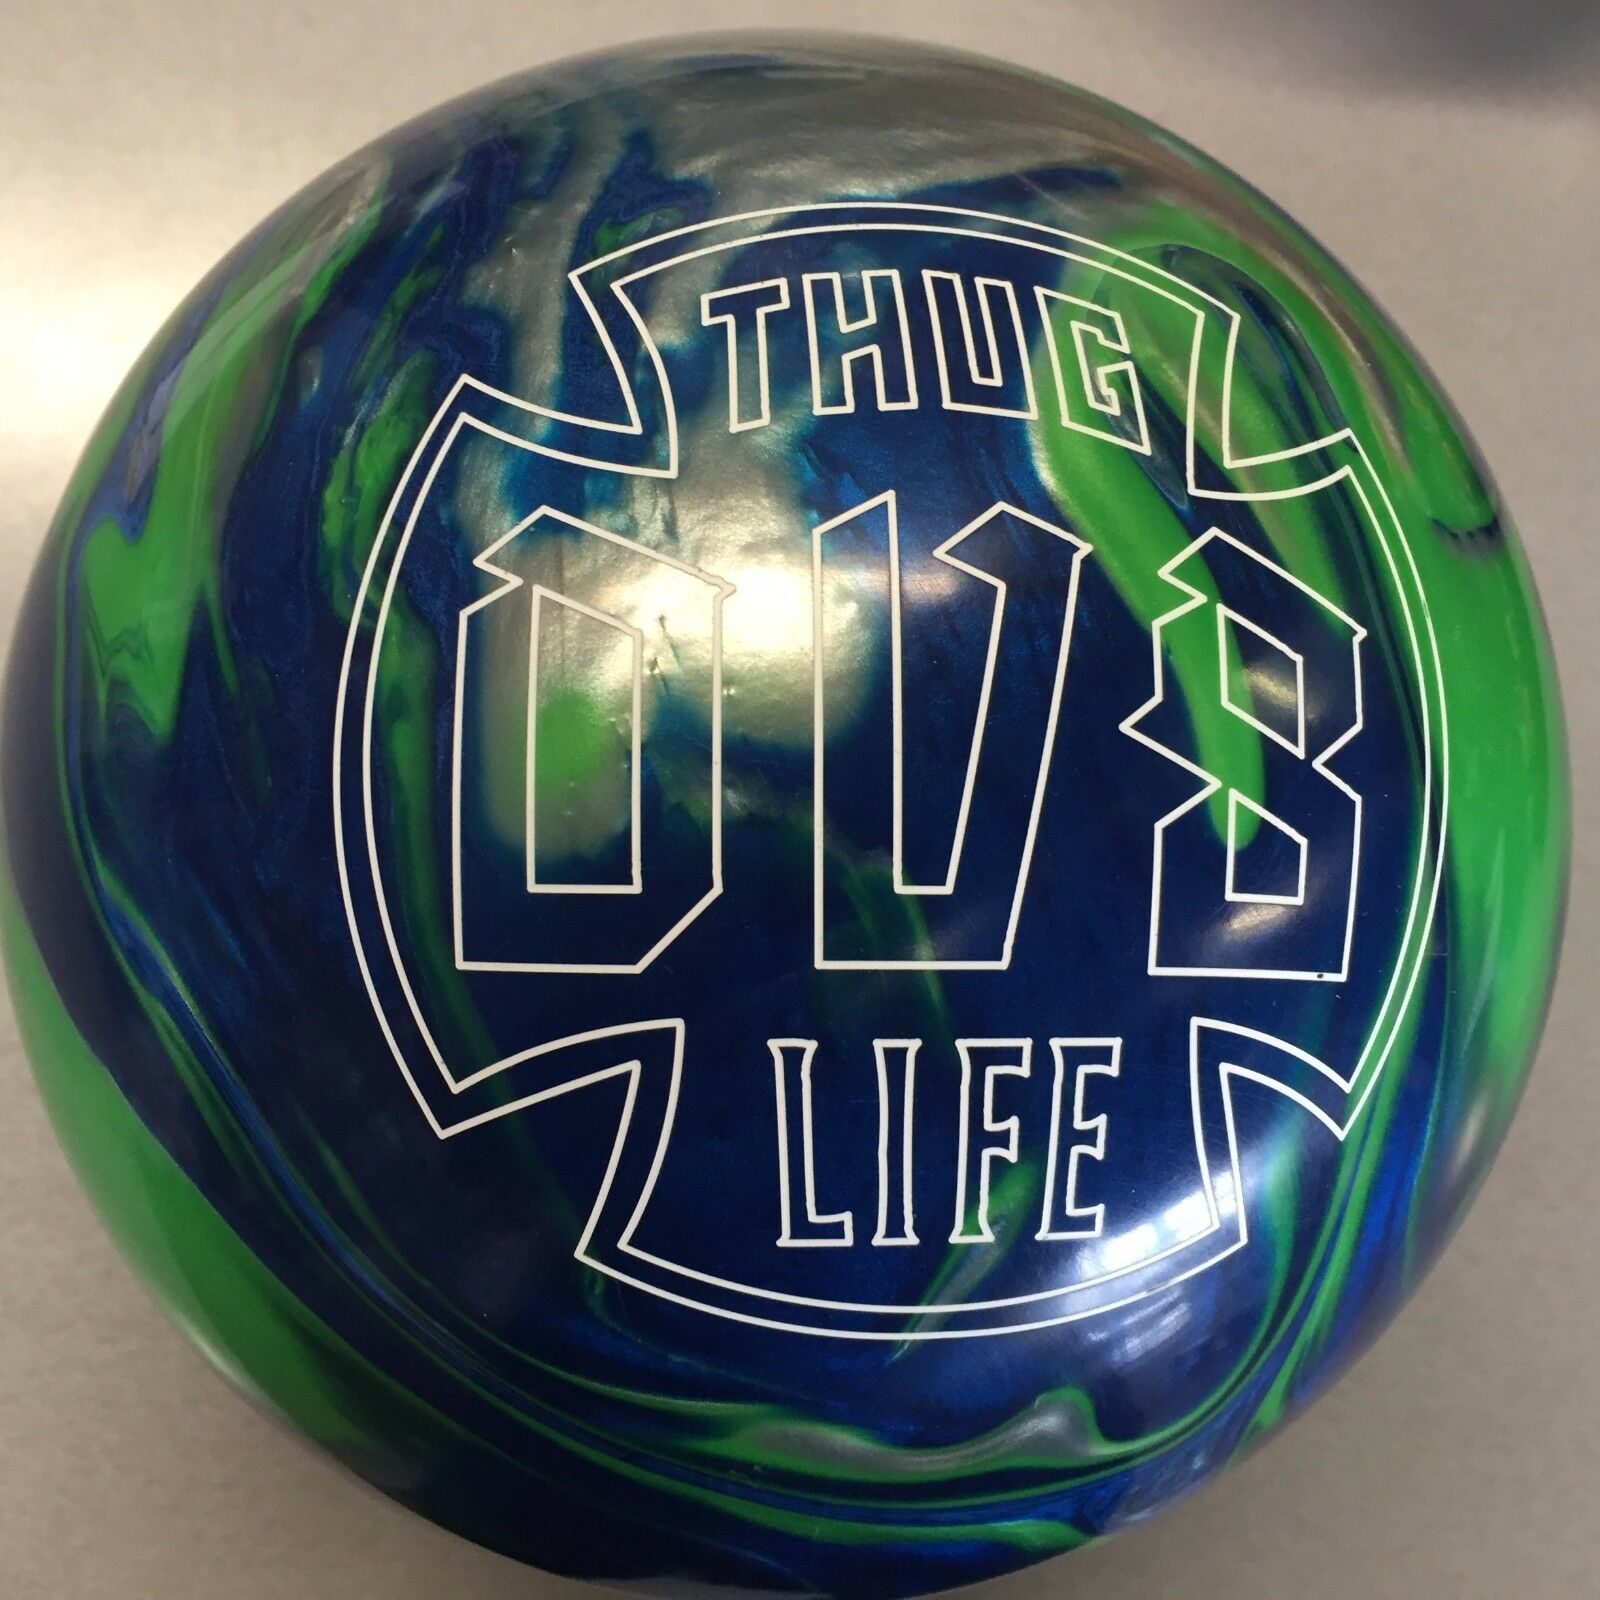 DV8 THUG LIFE  BOWLING  ball  16 lb. 1ST QUALITY  BRAND NEW IN BOX